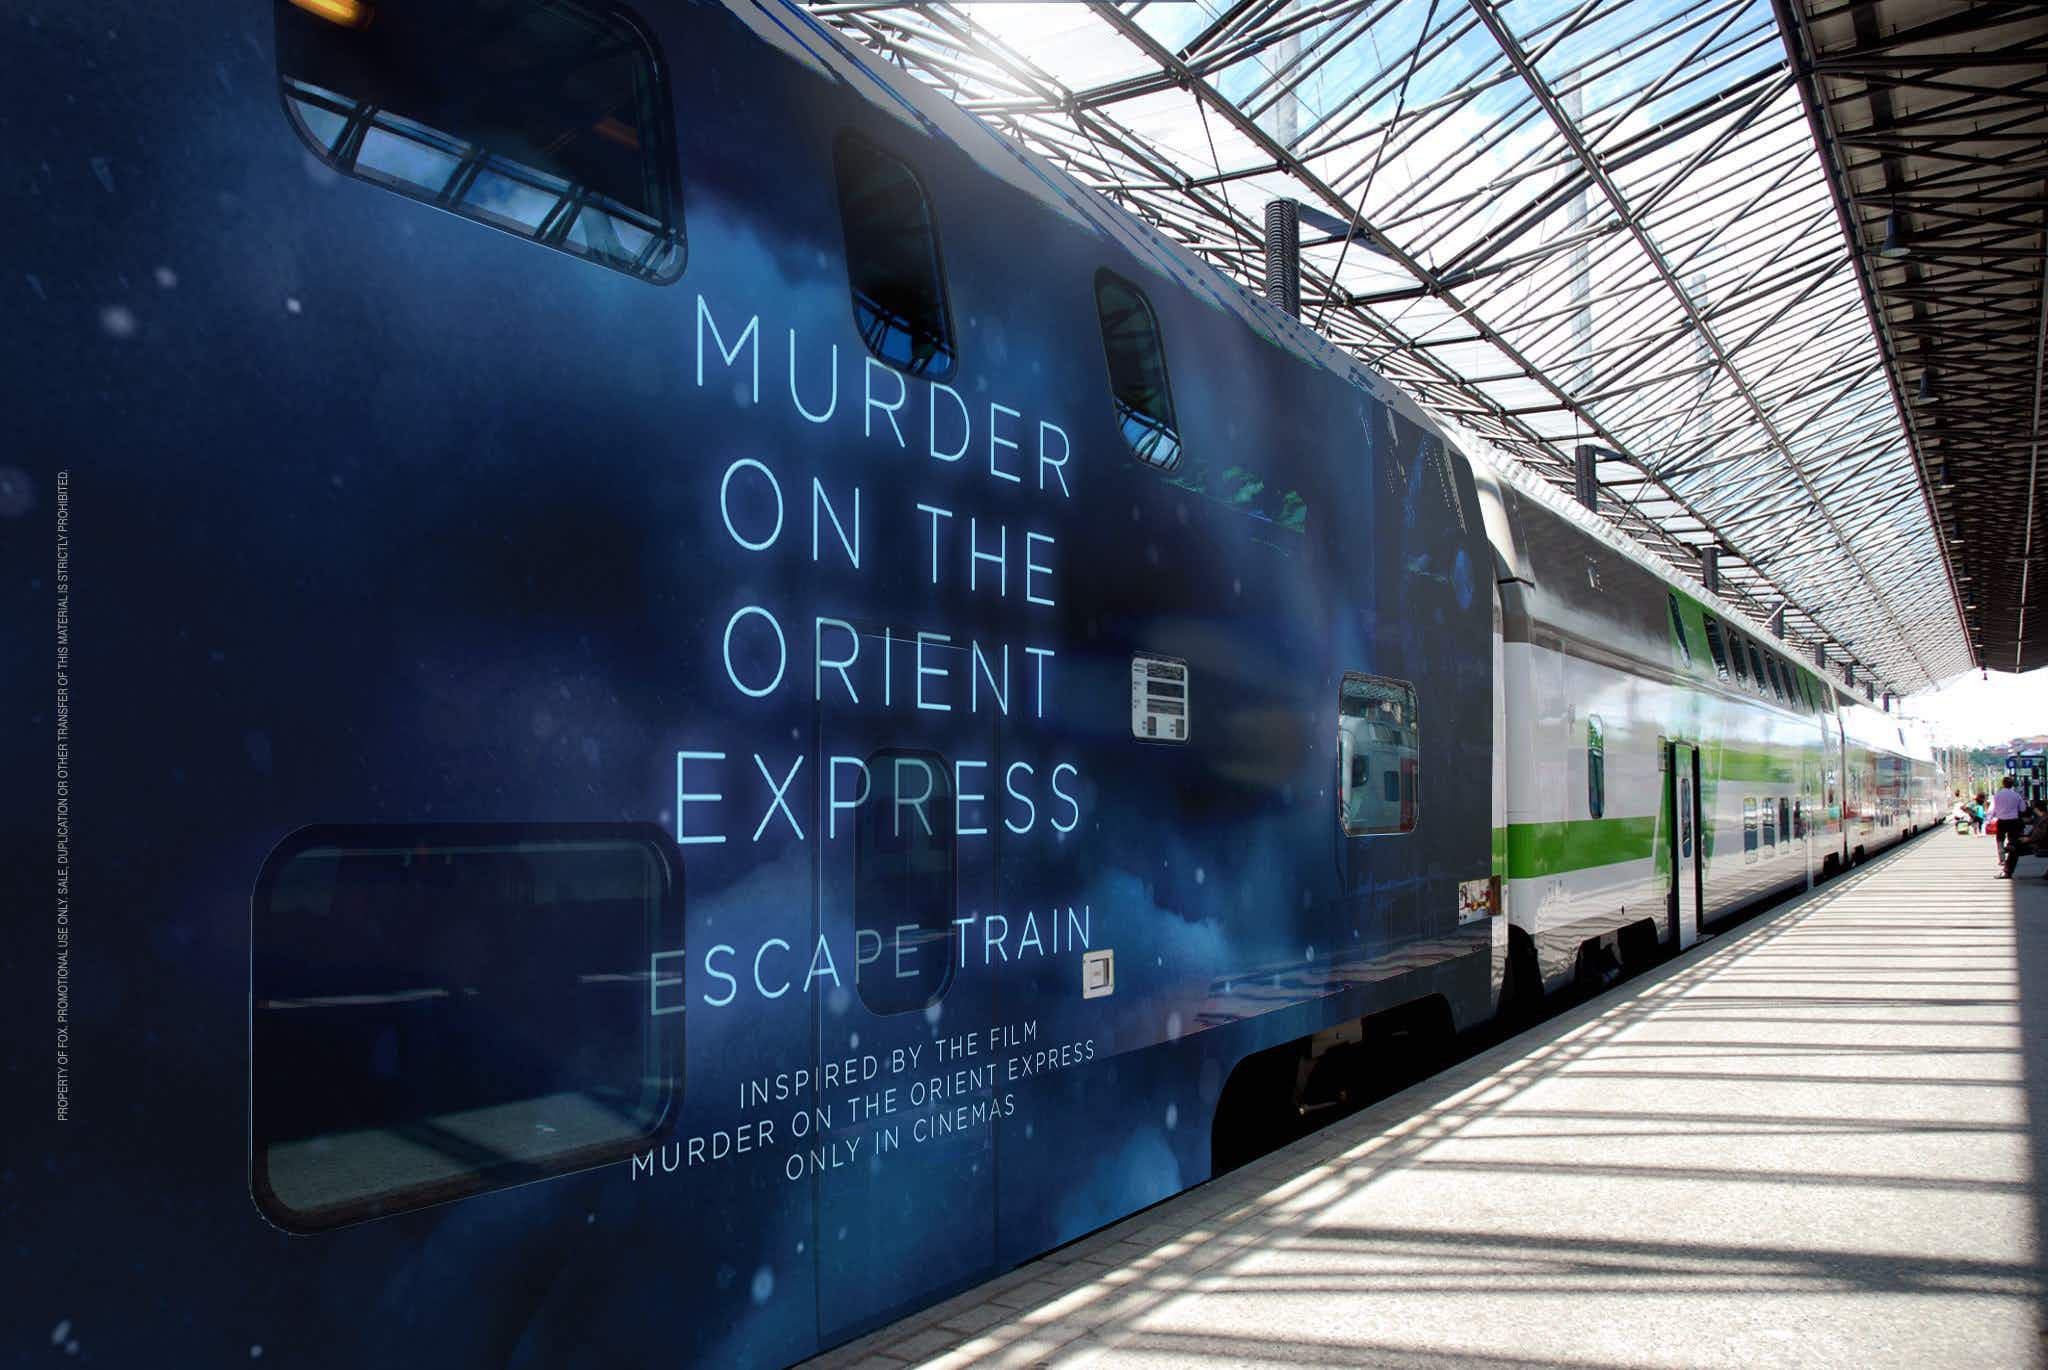 Solve a Murder on the Orient Express on this escape-room train in Finland